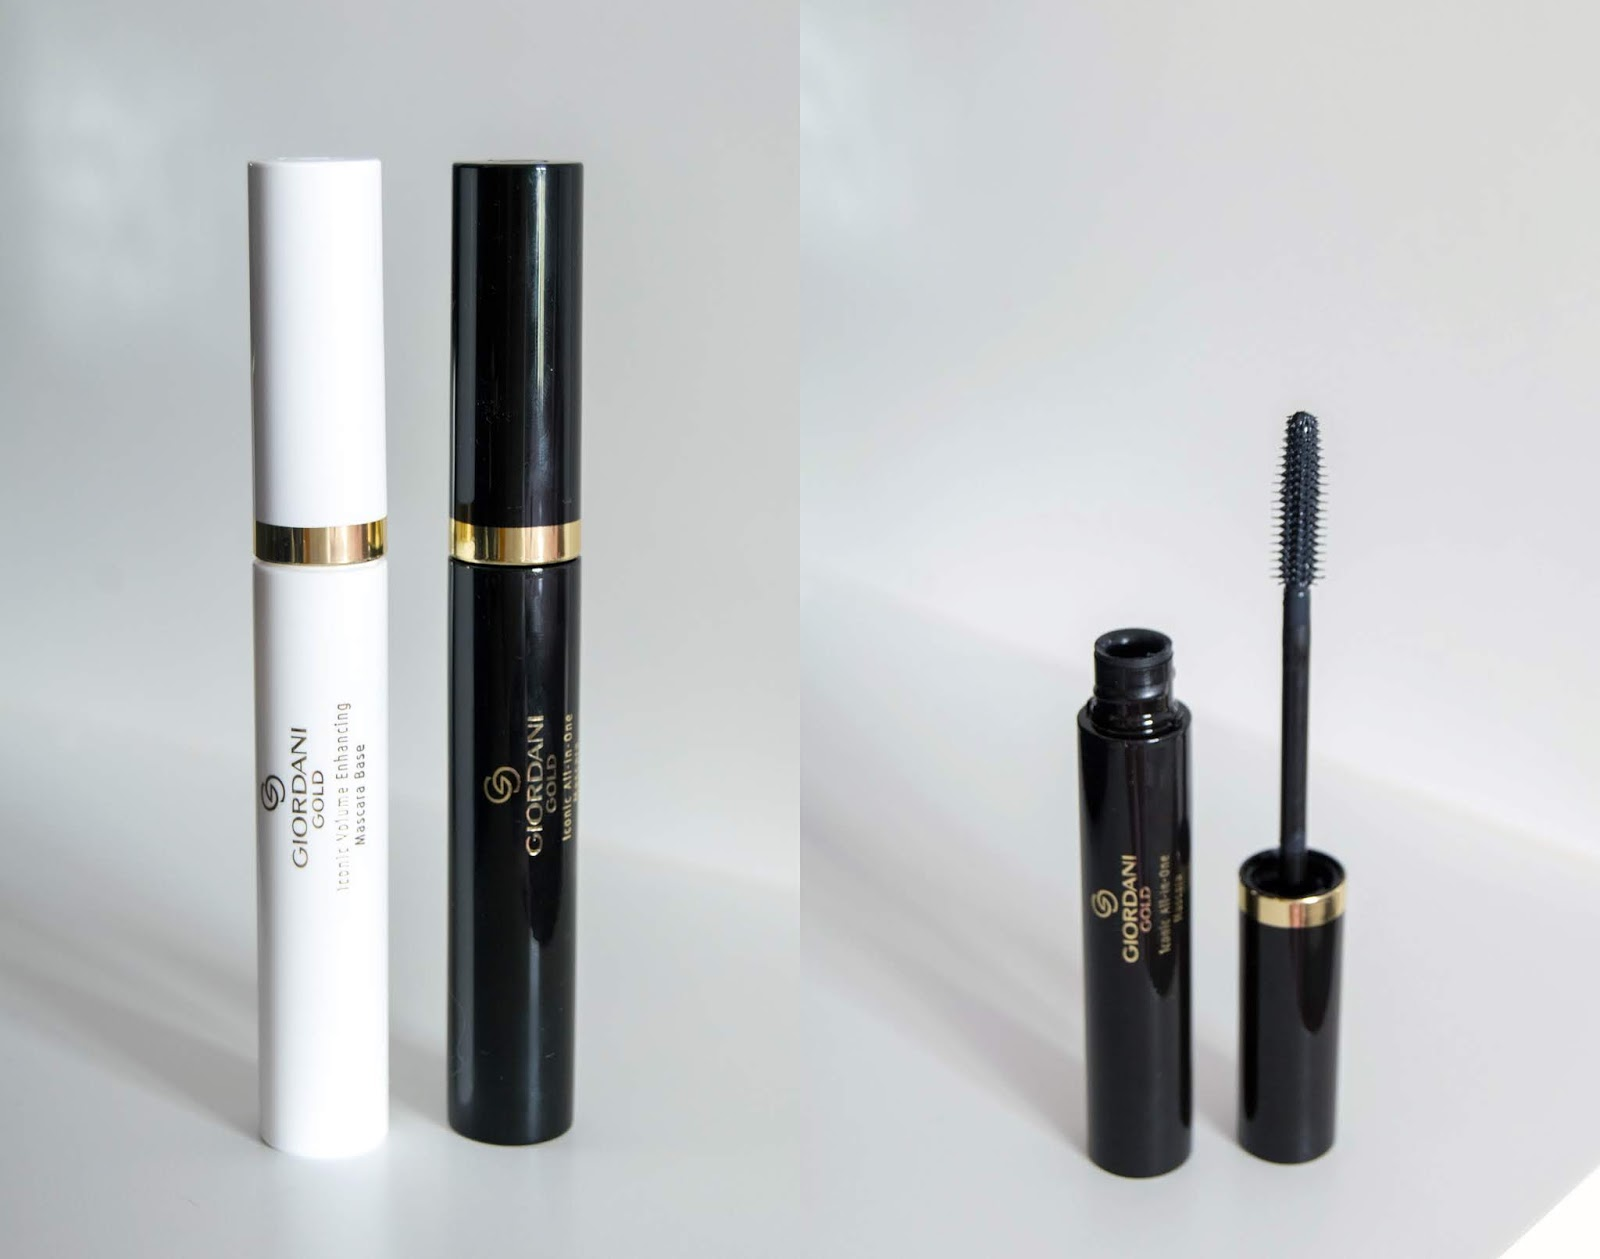 Iconic Volume Enhancing Mascara Base + Iconic All-in-One Mascara Giordani Gold  - Oriflame